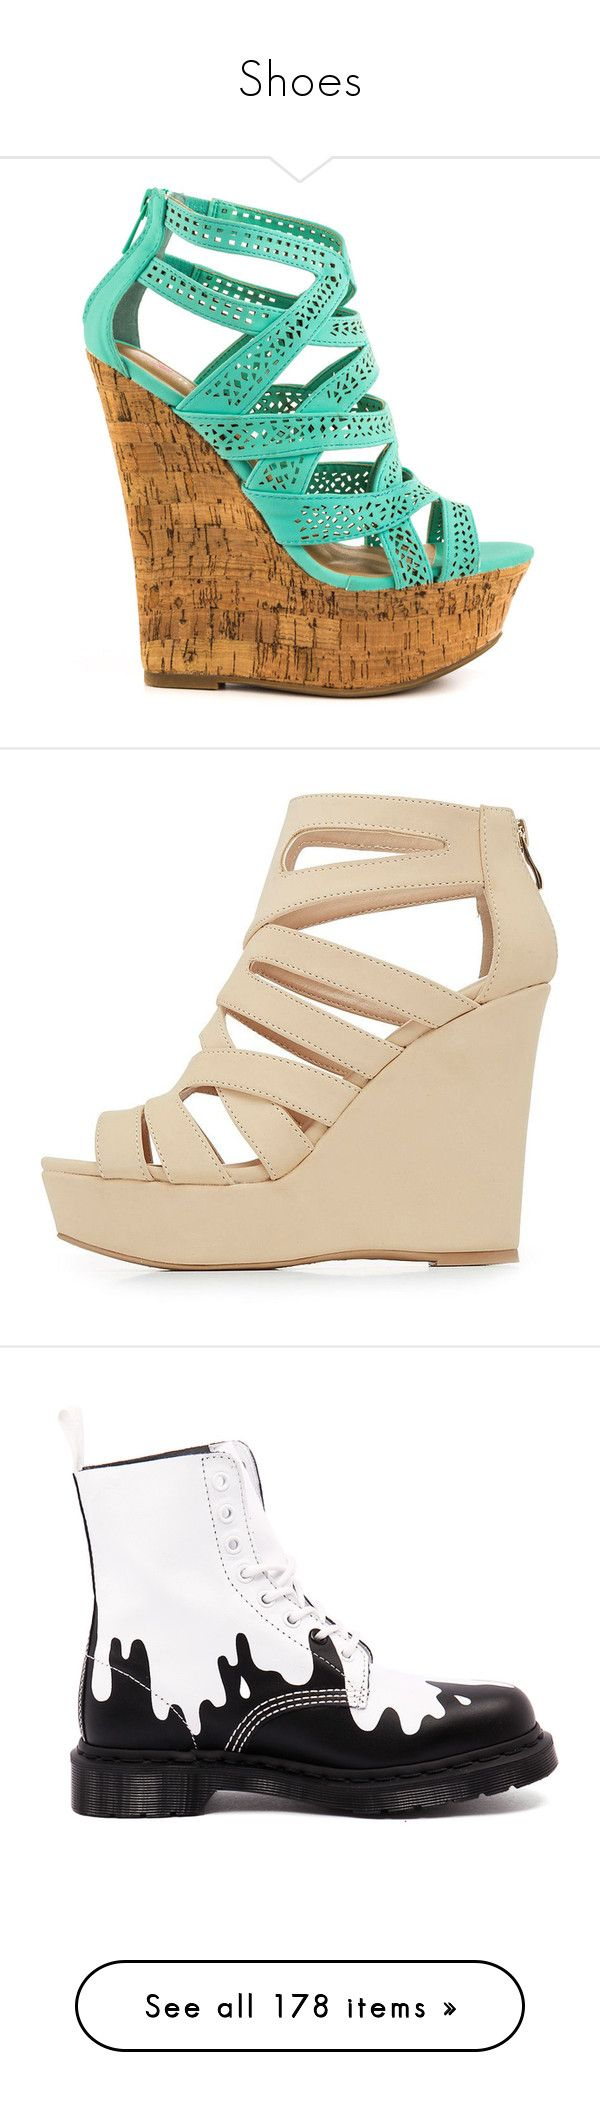 """""""Shoes"""" by meganhenderson845 on Polyvore featuring shoes, sandals, wedges, heels, green, strappy heeled sandals, wedges shoes, wedge sandals, green strappy sandals and strappy wedge sandals"""